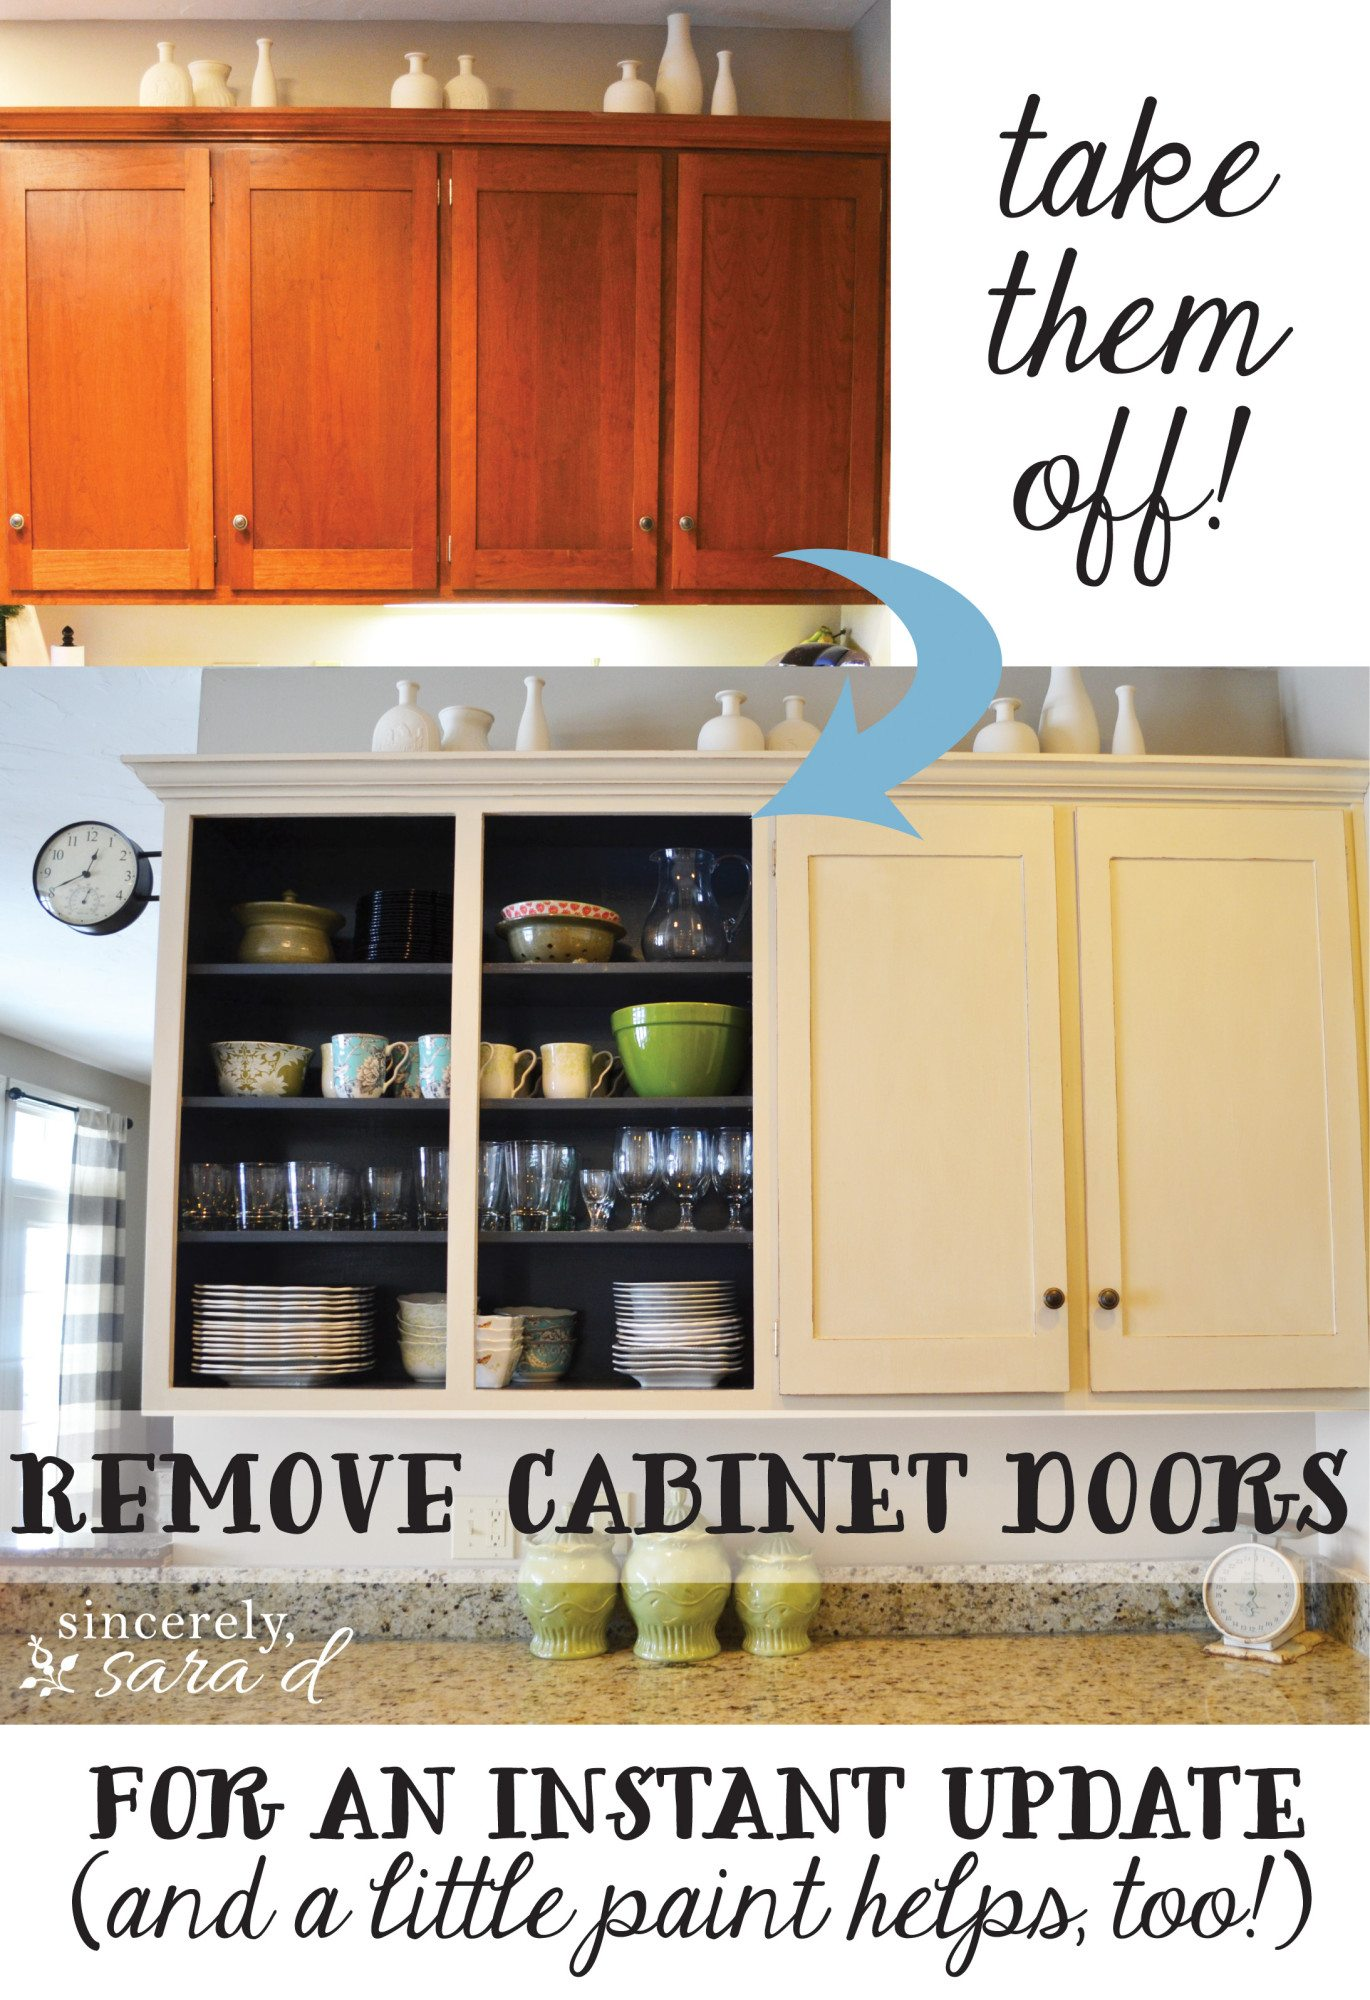 Instant Kitchen Cabinets : Remove cabinet doors instant kitchen update sincerely